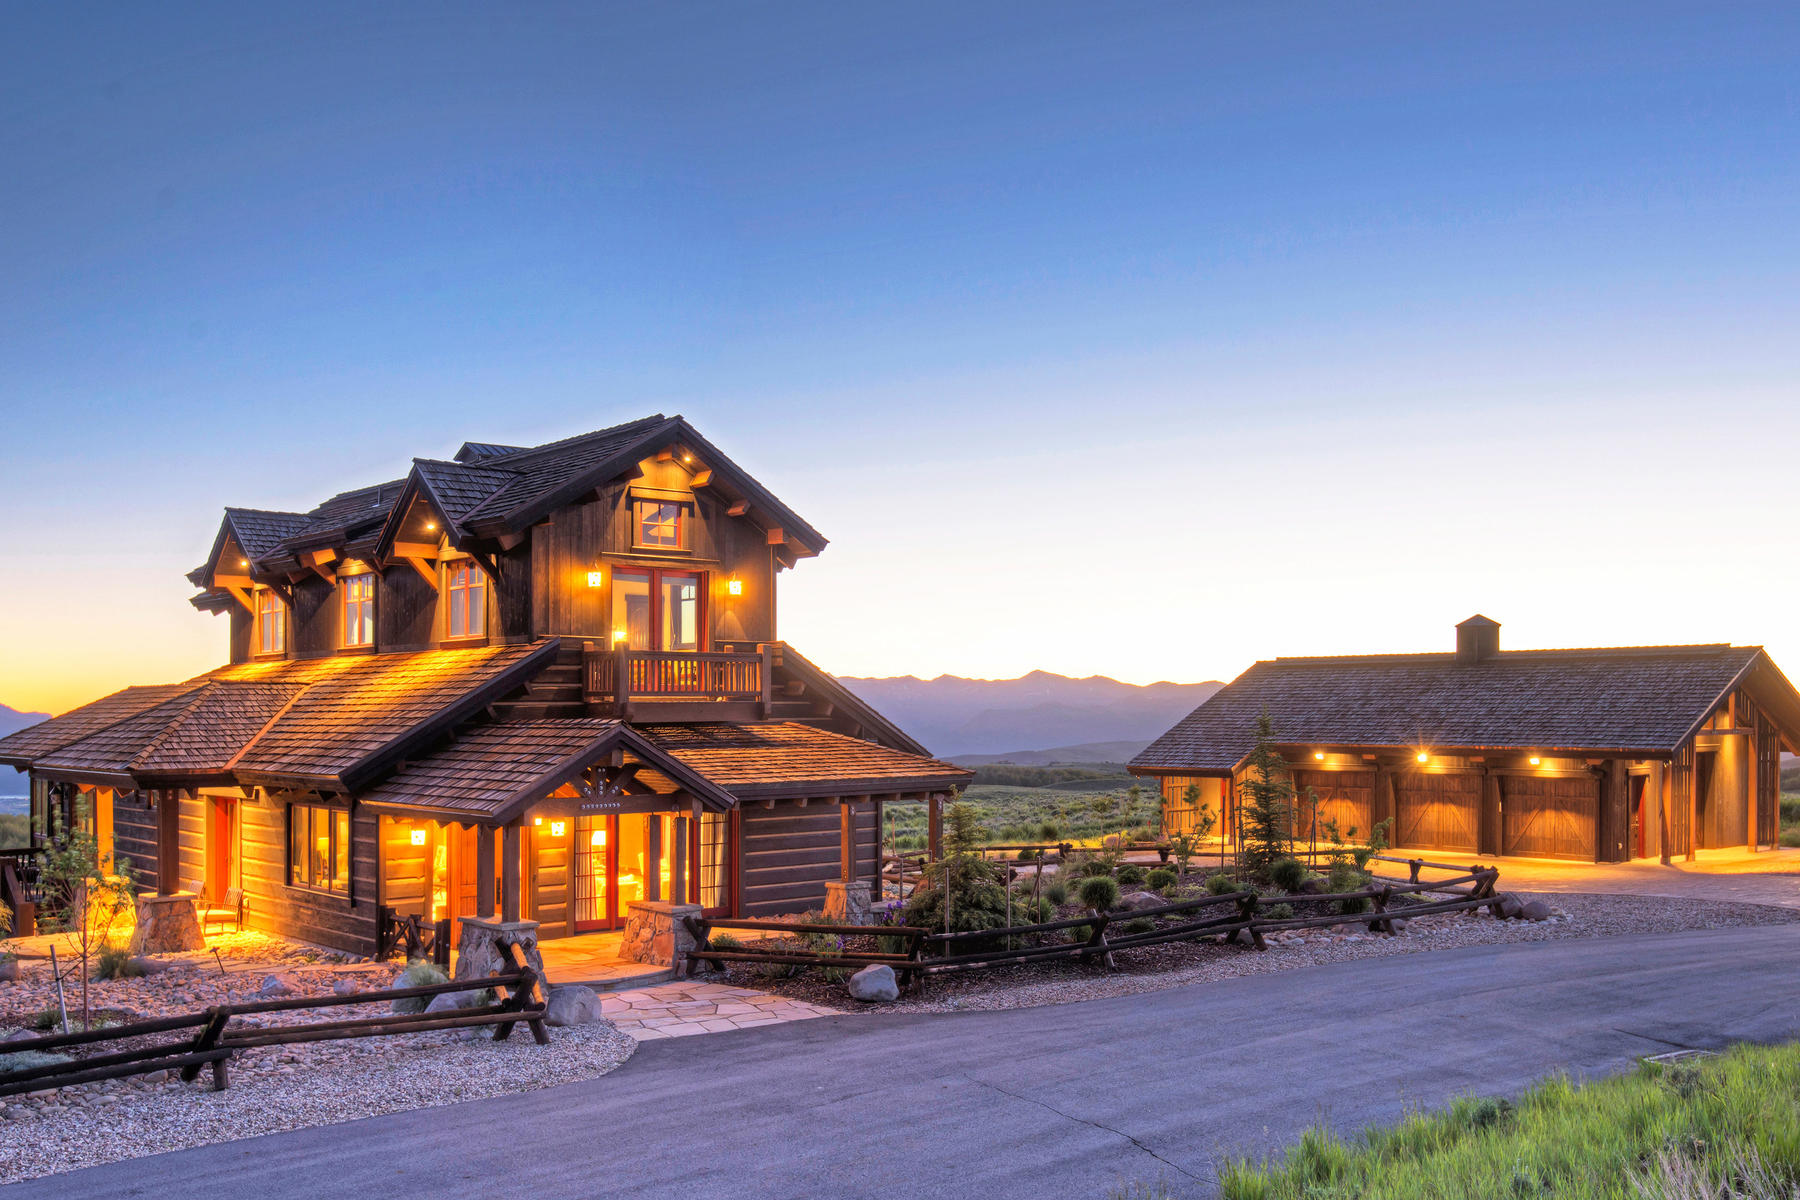 Single Family Home for Sale at Wolf Creek Ranch Exclusive Estate with Superb views! 10454 Forest Creek Rd Woodland, Utah 84036 United States